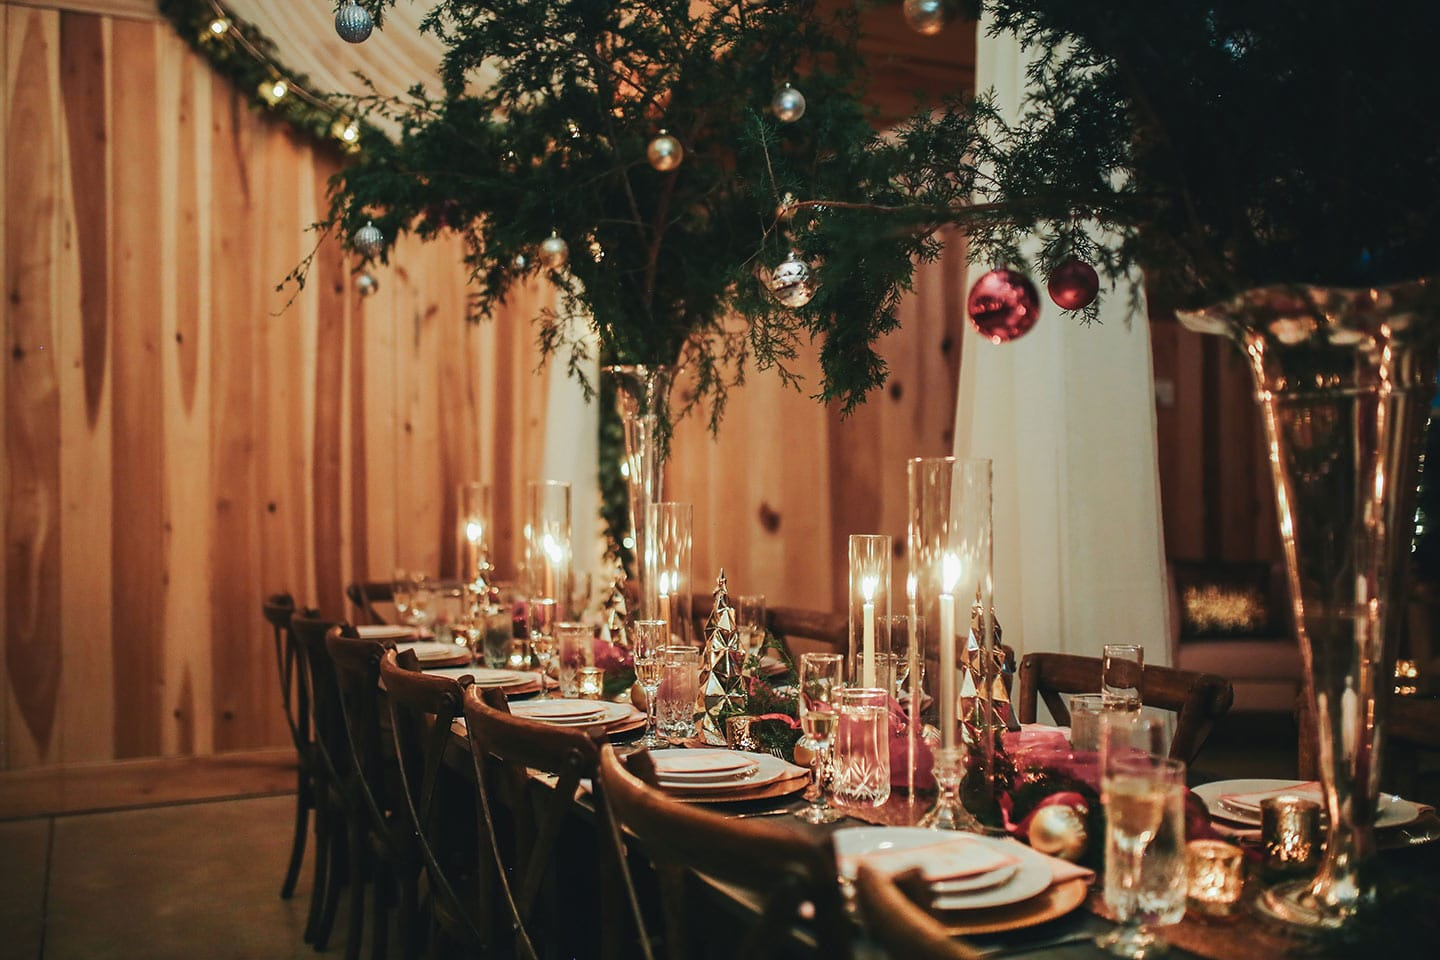 A dining room table with a holiday party